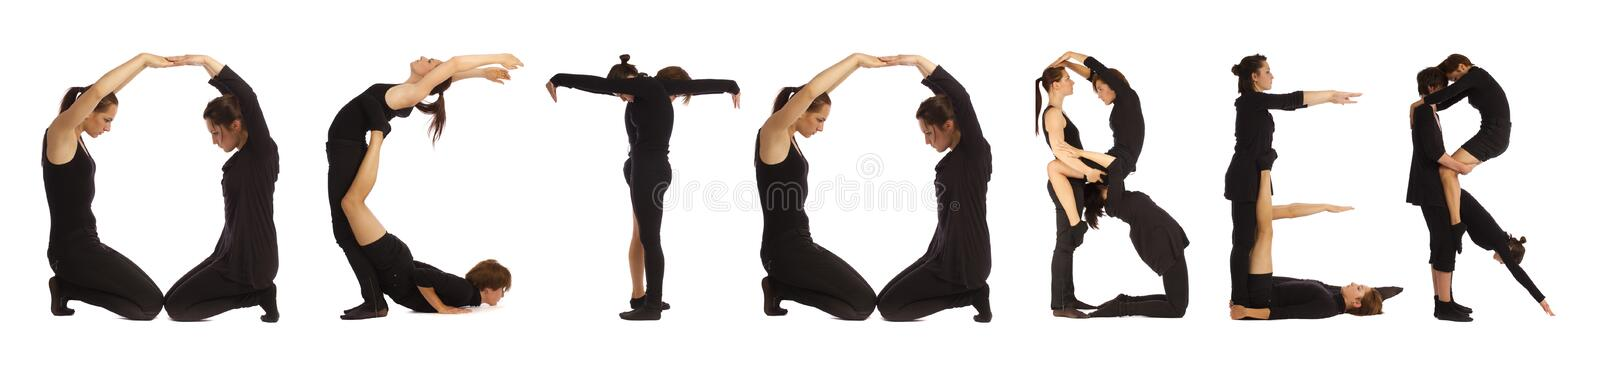 Black dressed people forming OCTOBER word stock images